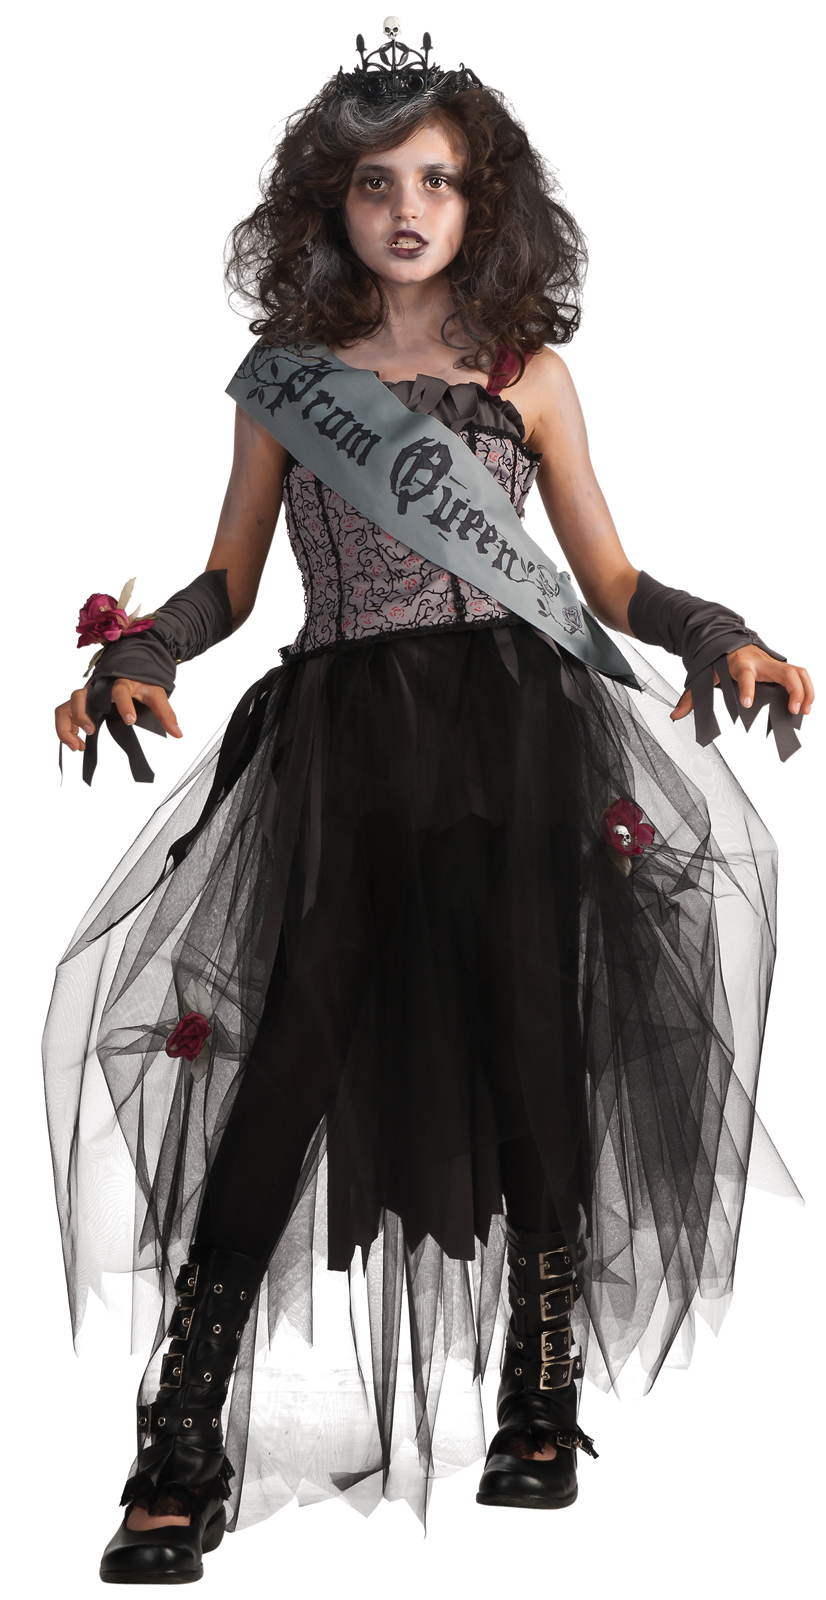 Dark Cozy Girl City Wallpaper Goth Prom Queen Child Costume Buycostumes Com